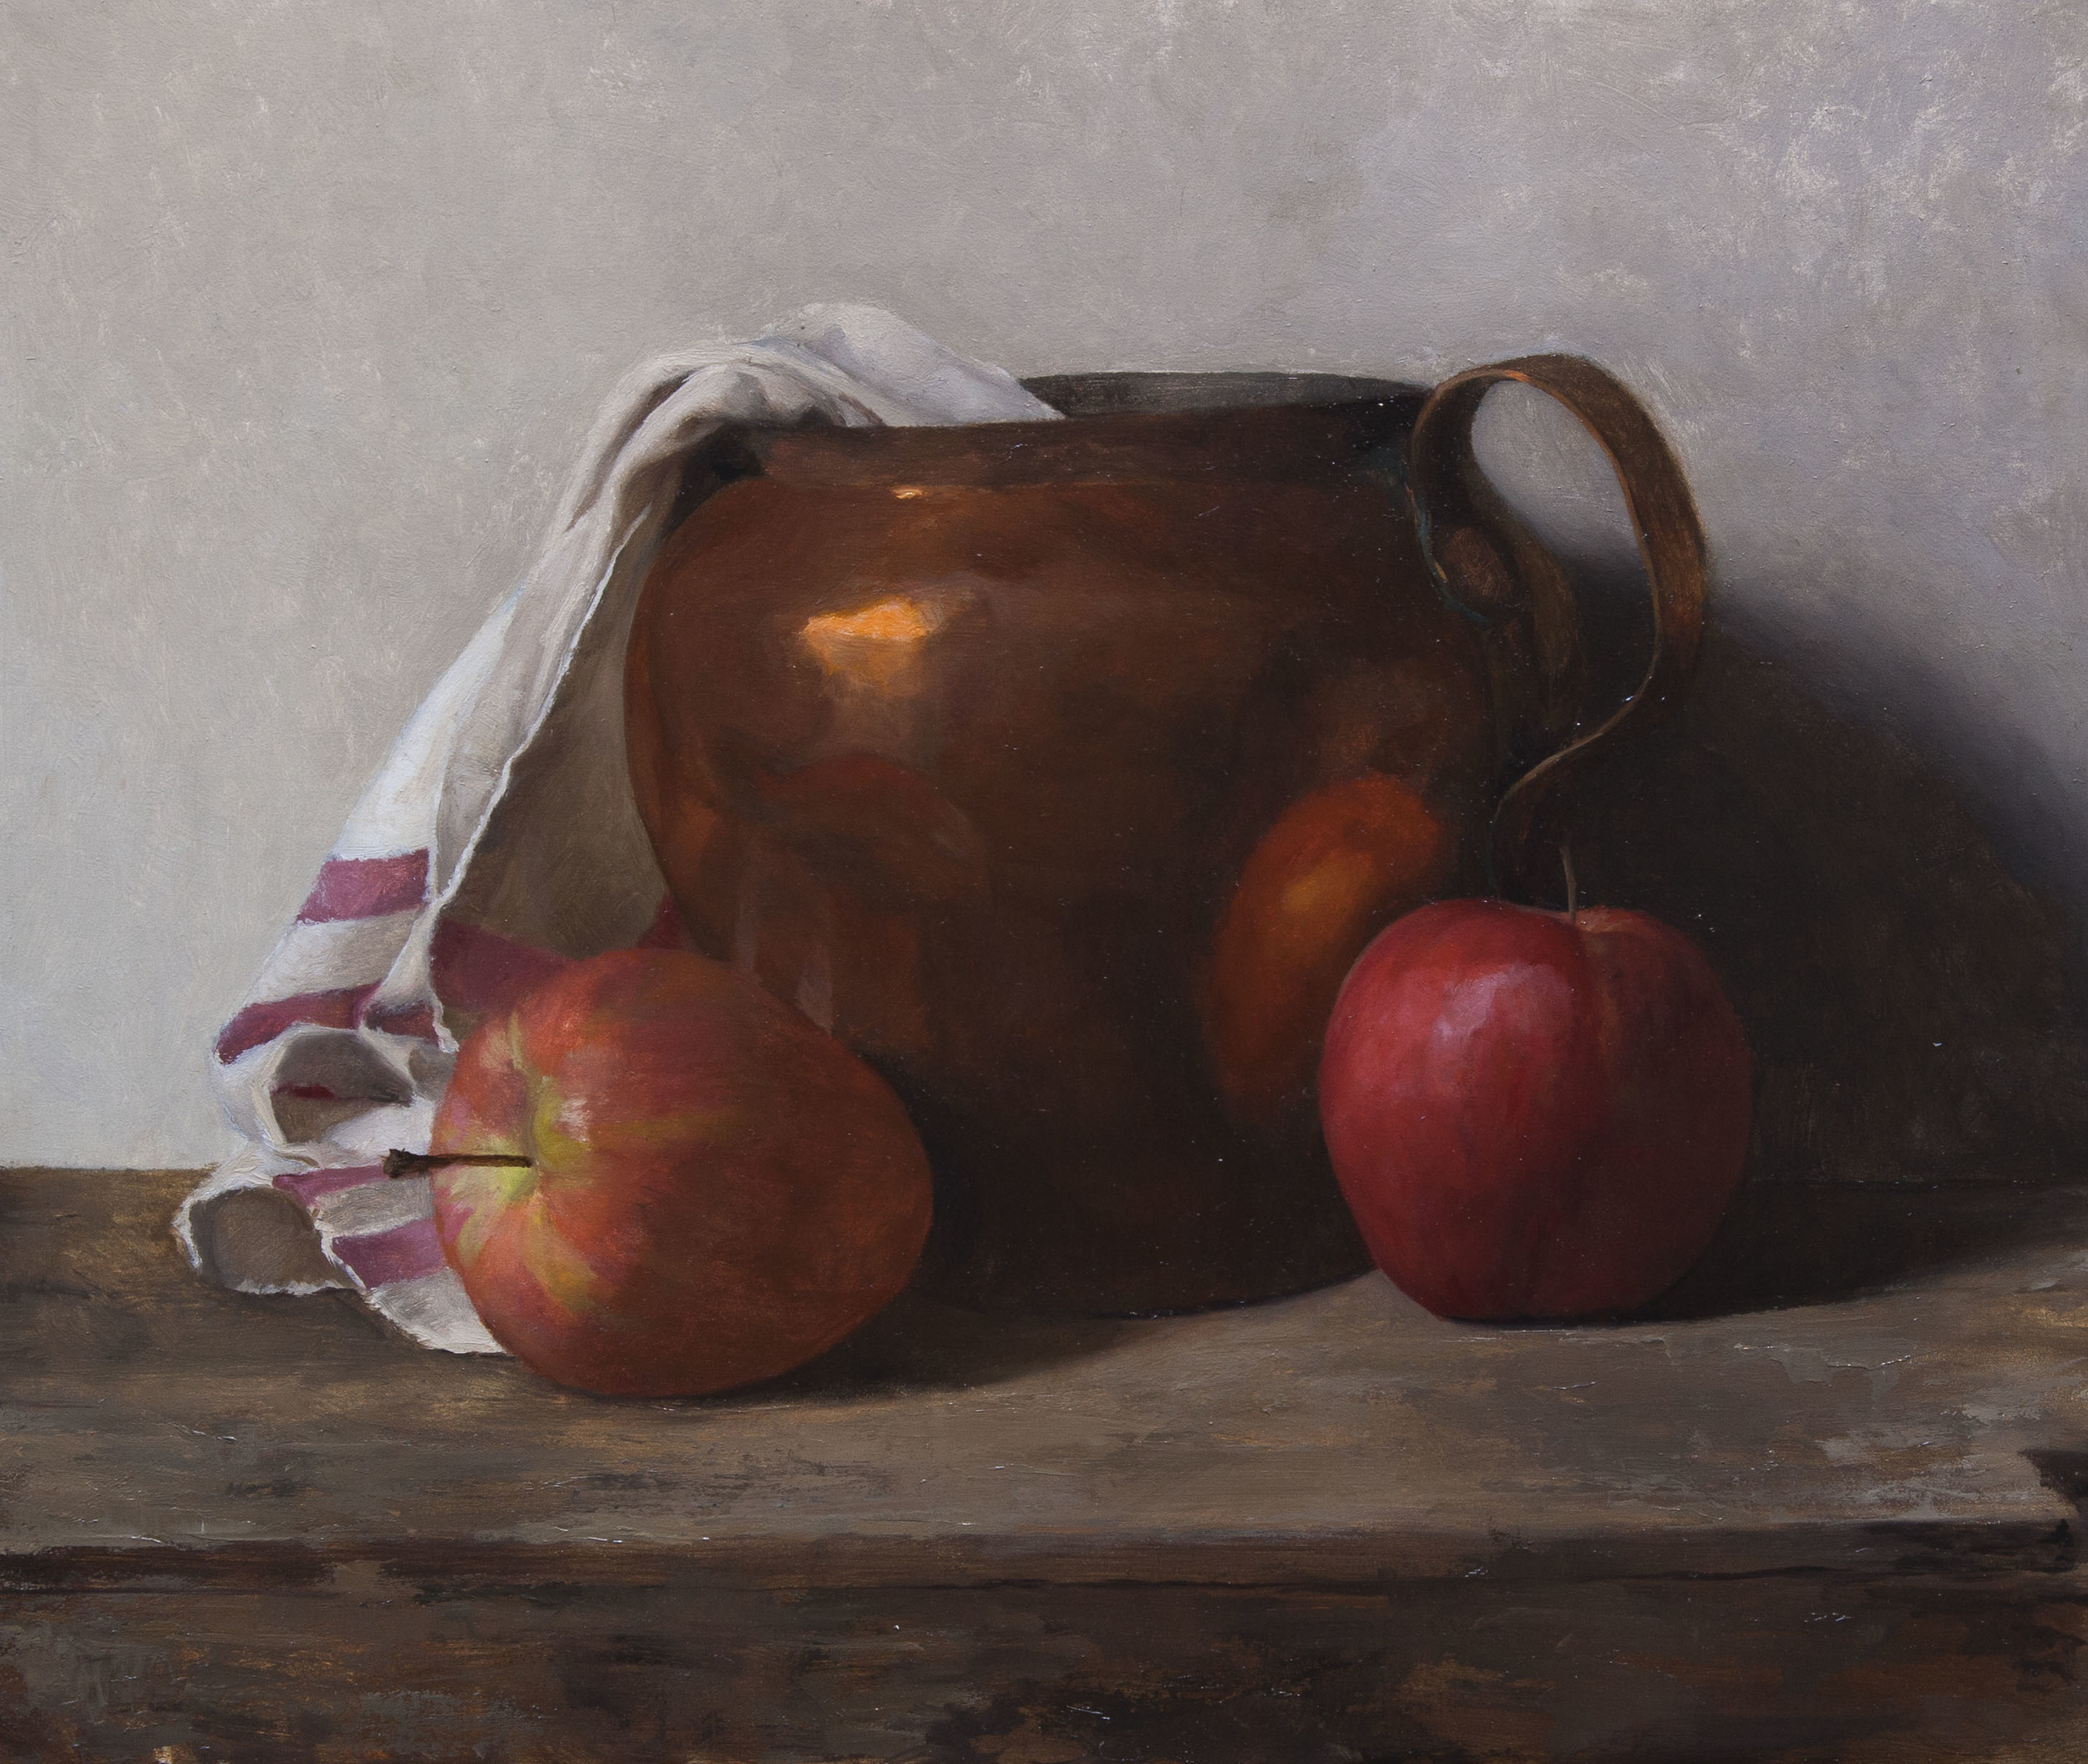 Copper Pot With Apples. 10x12. Oil on Panel